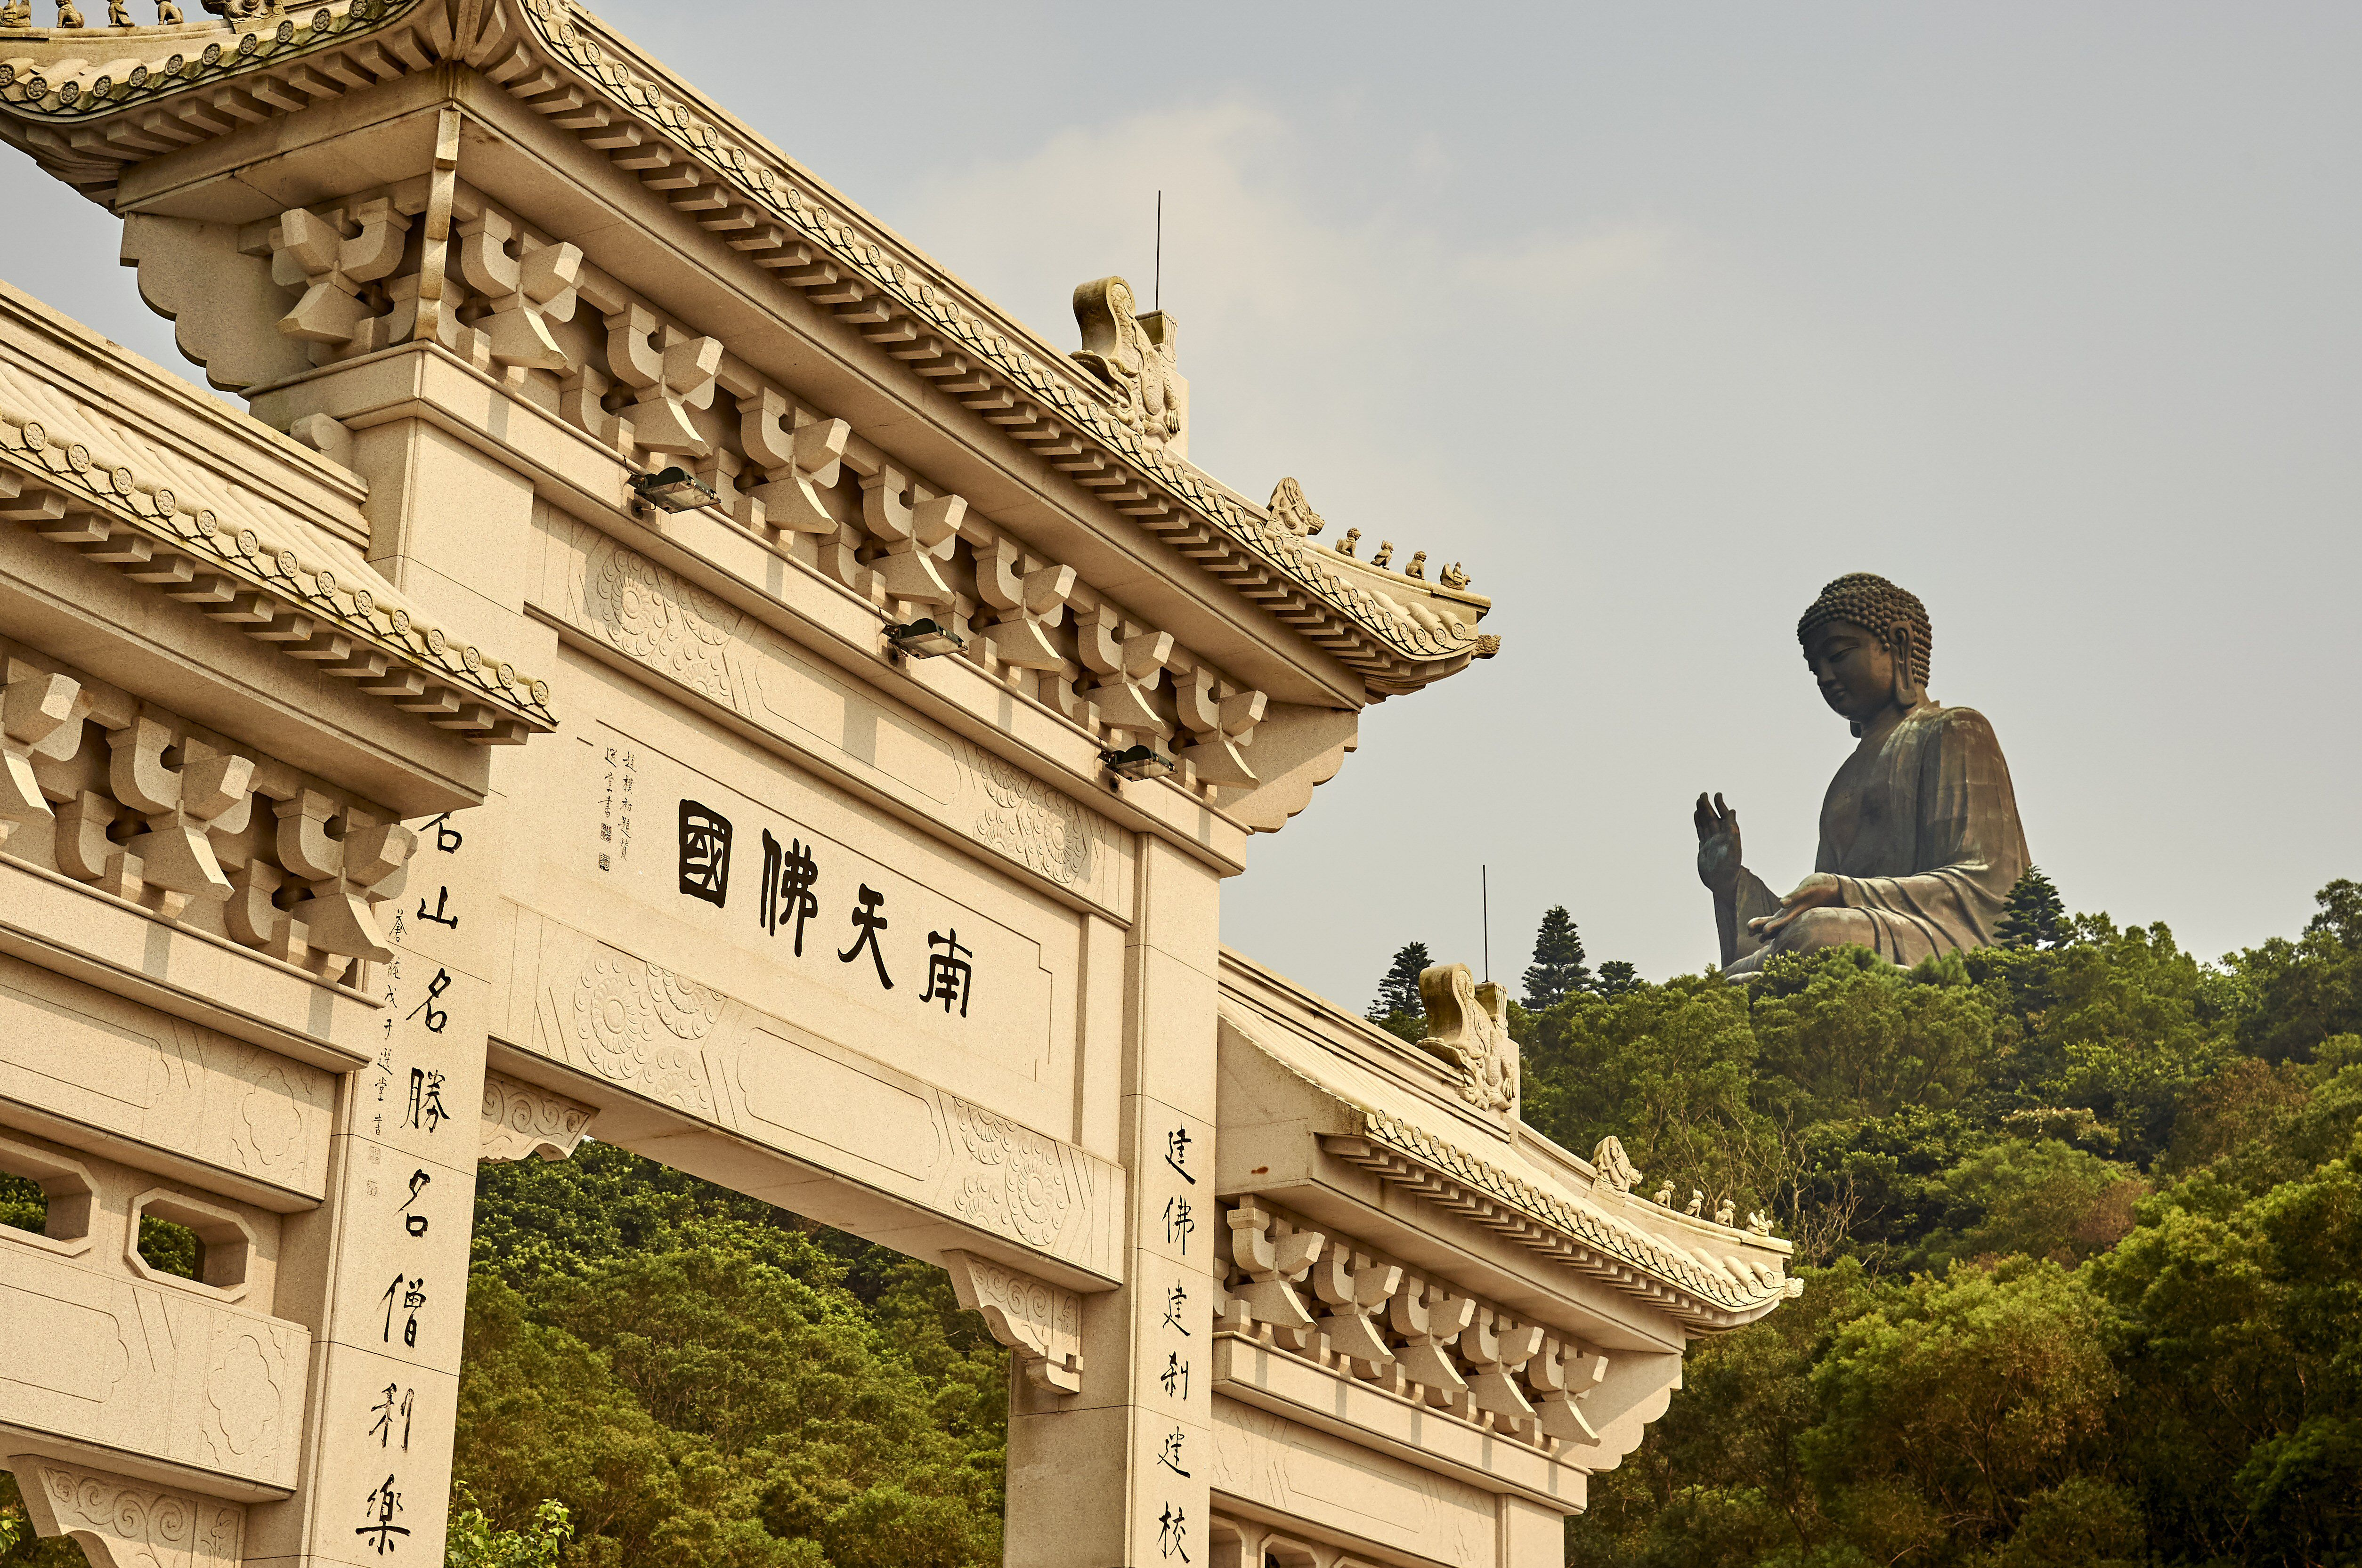 Chinese entrance in foreground and huge statue in background